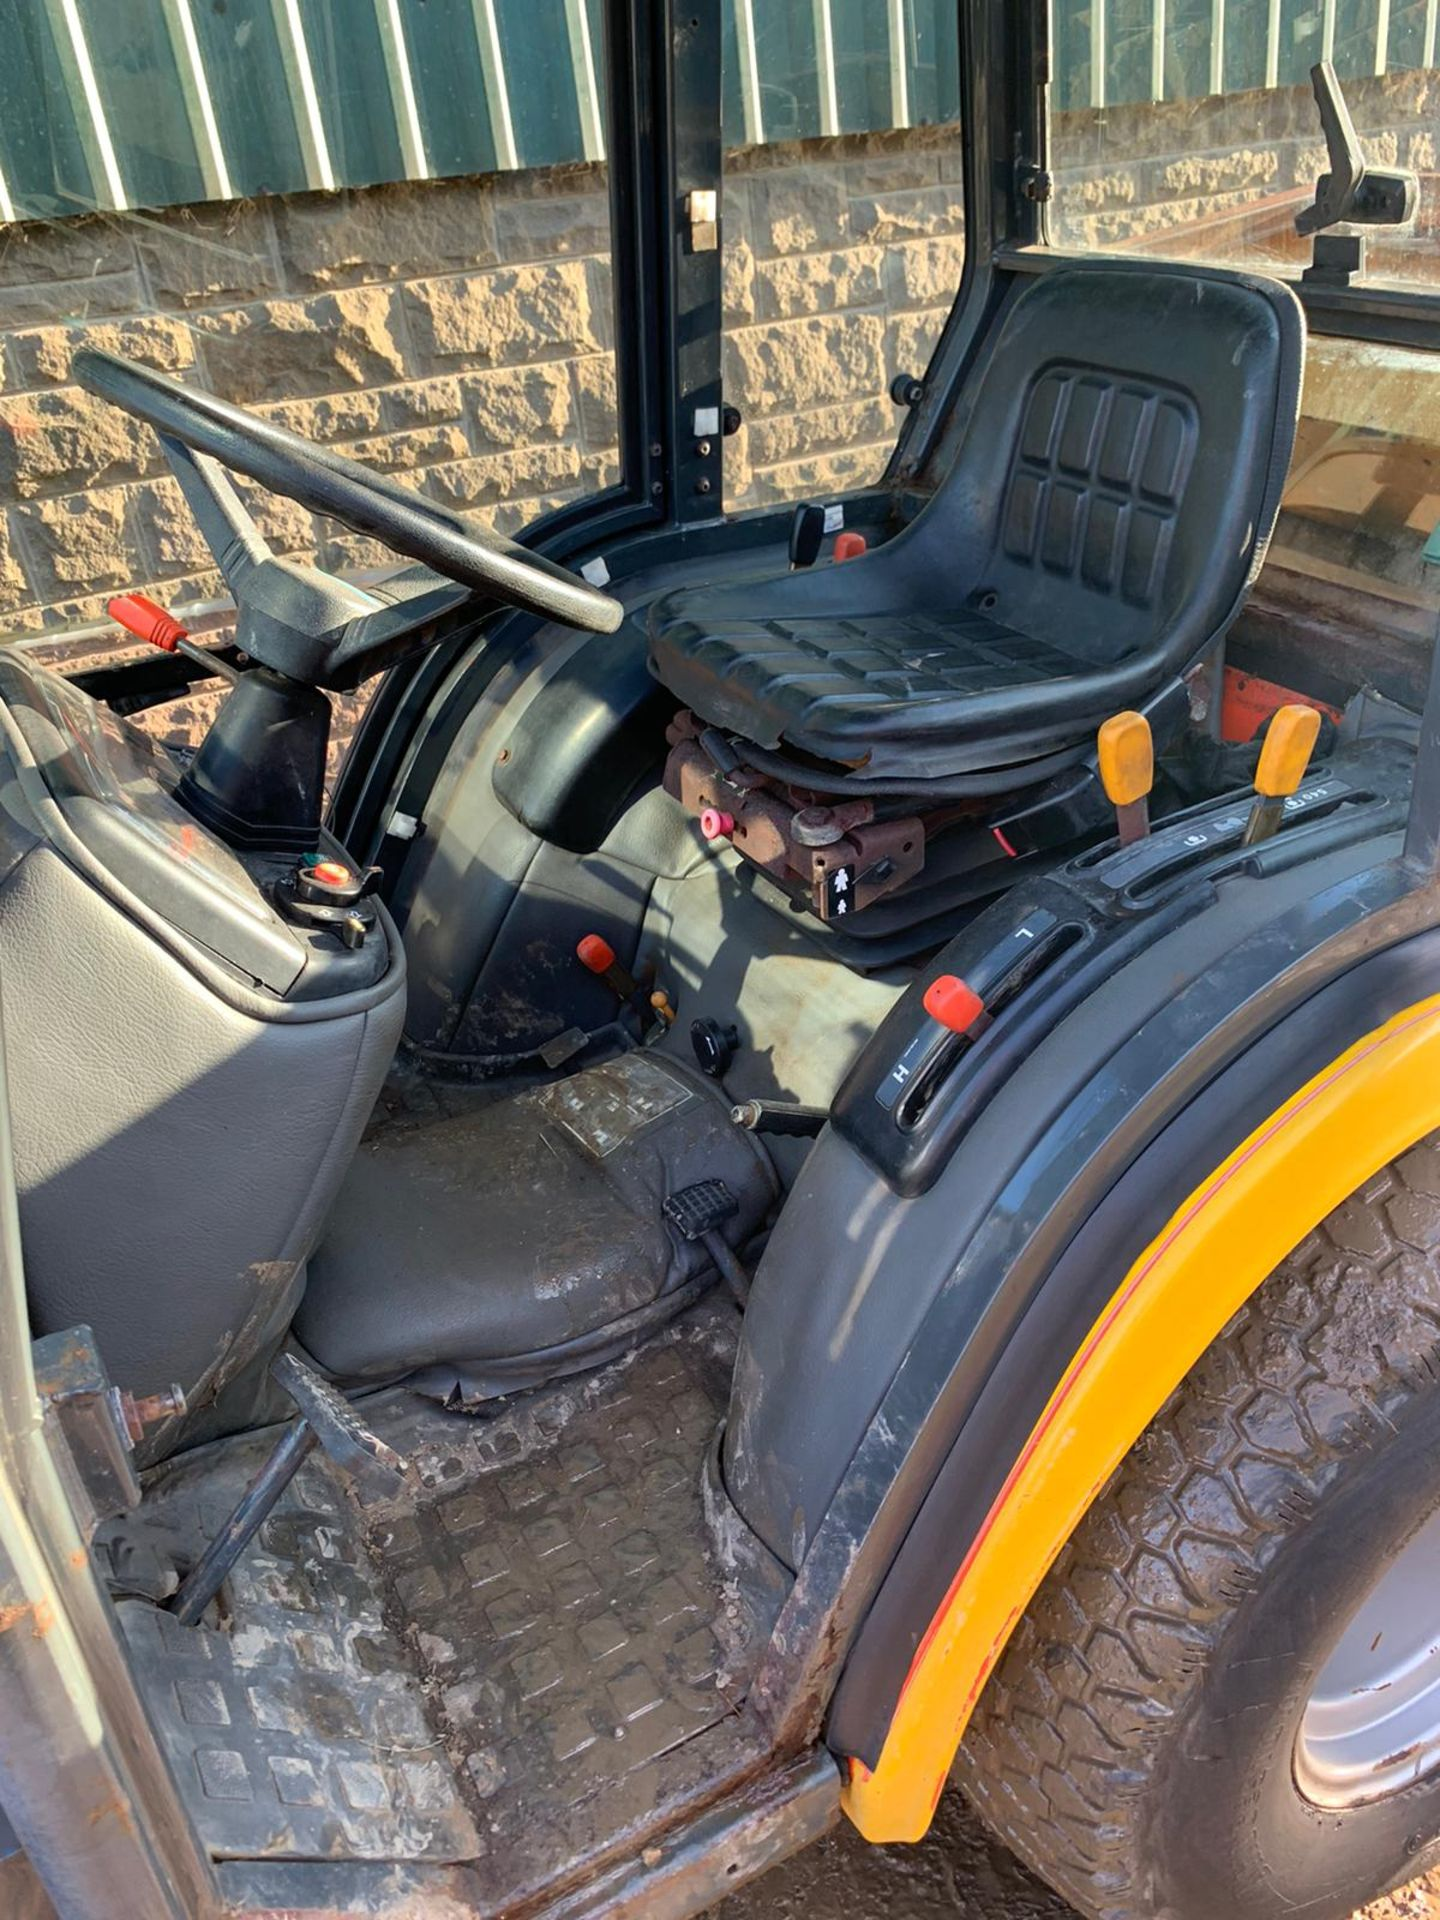 2005 KUBOTA B2110H COMPACT TRACTOR, RUNS, DRIVES AND WORKS, FULL GLASS CAB, ROAD LEGAL *PLUS VAT* - Image 5 of 6